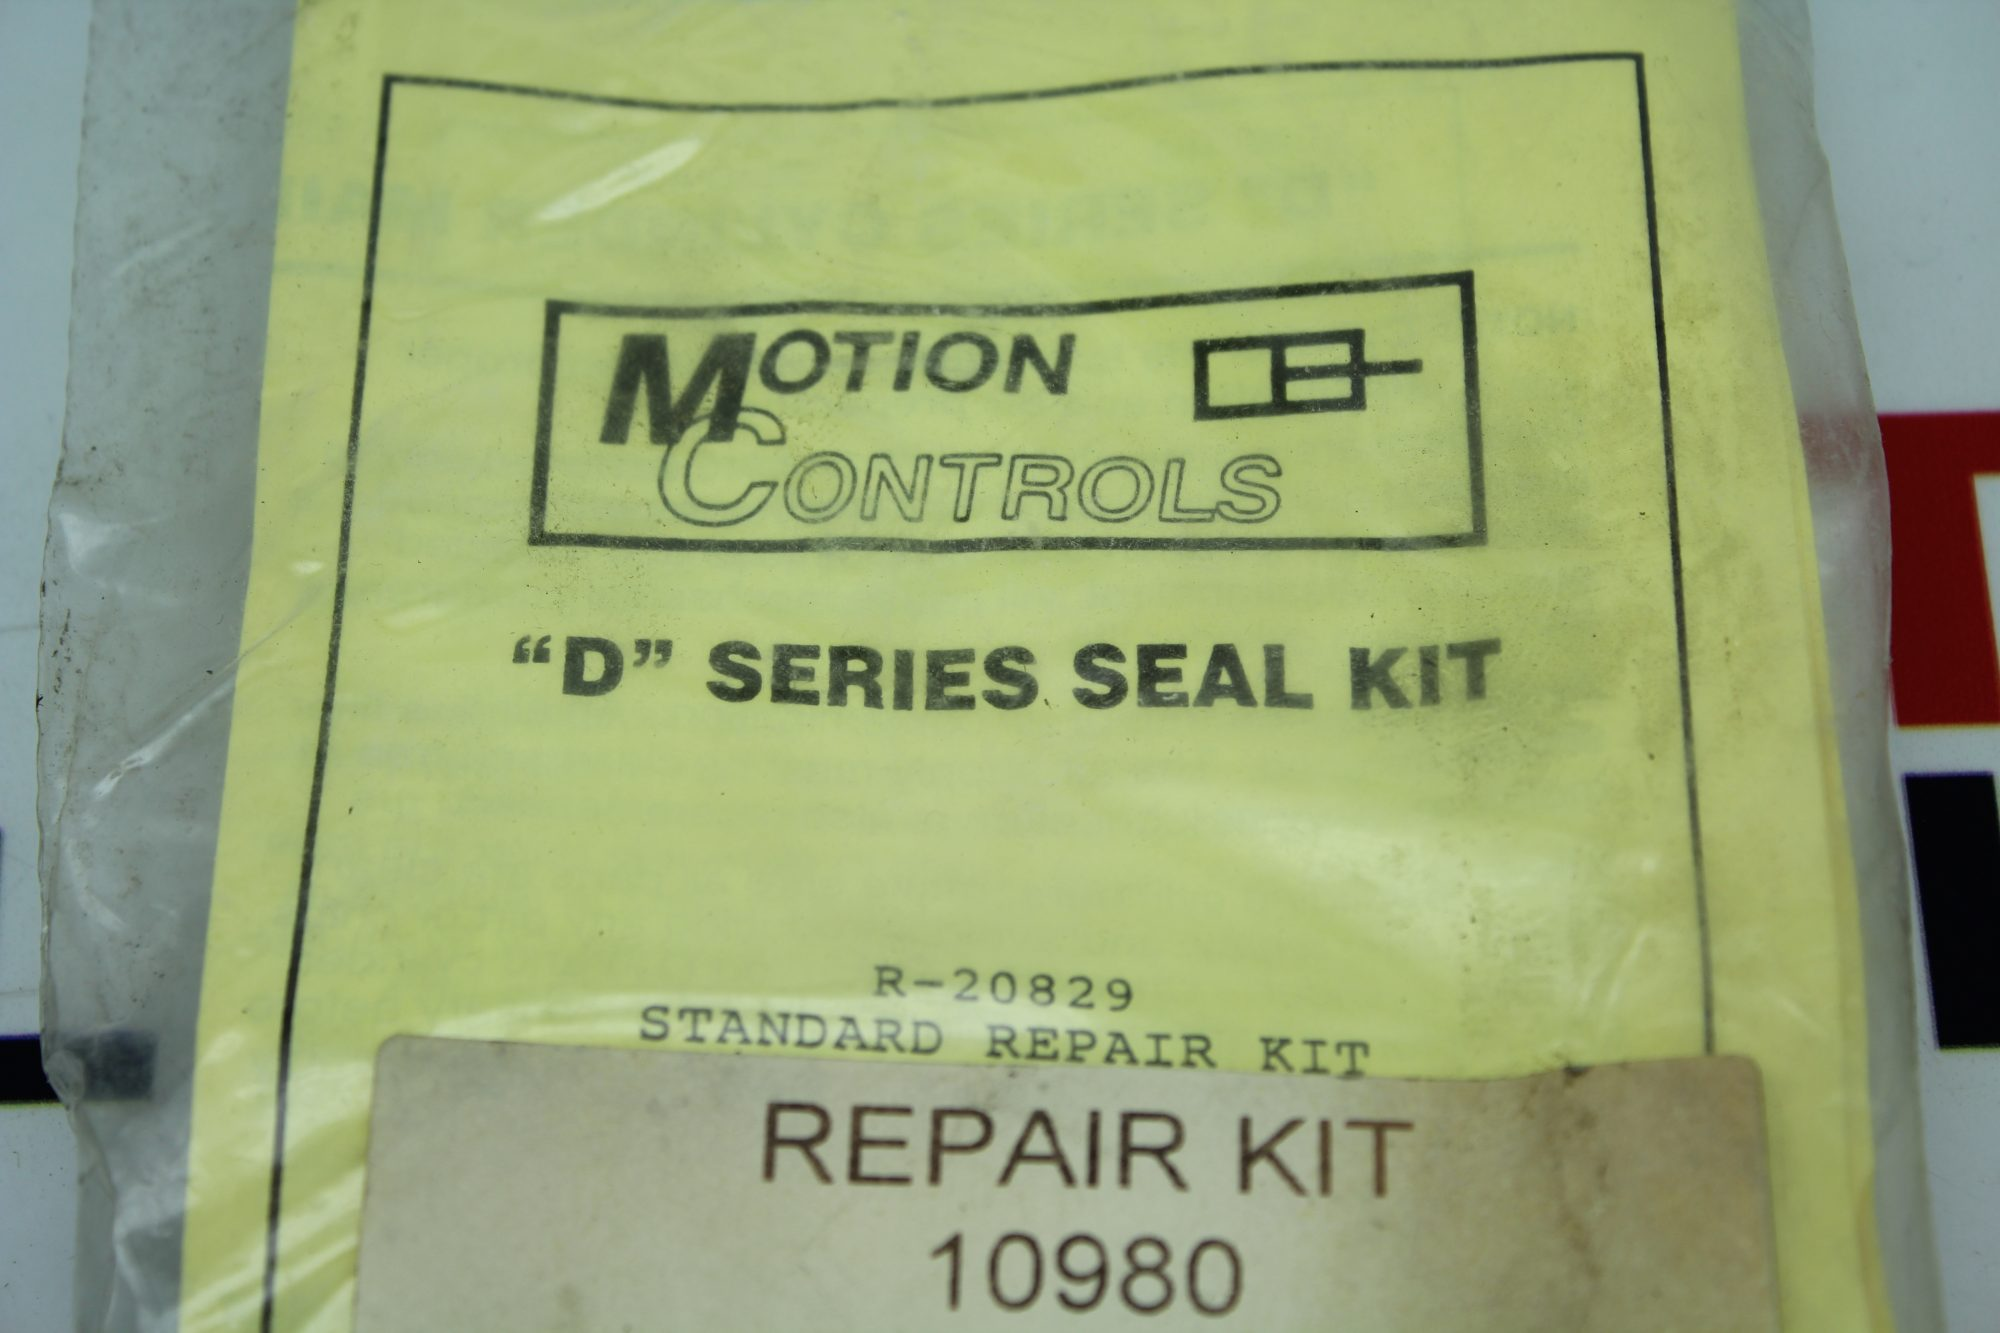 Motion Controls D Series Seal Kit 10980